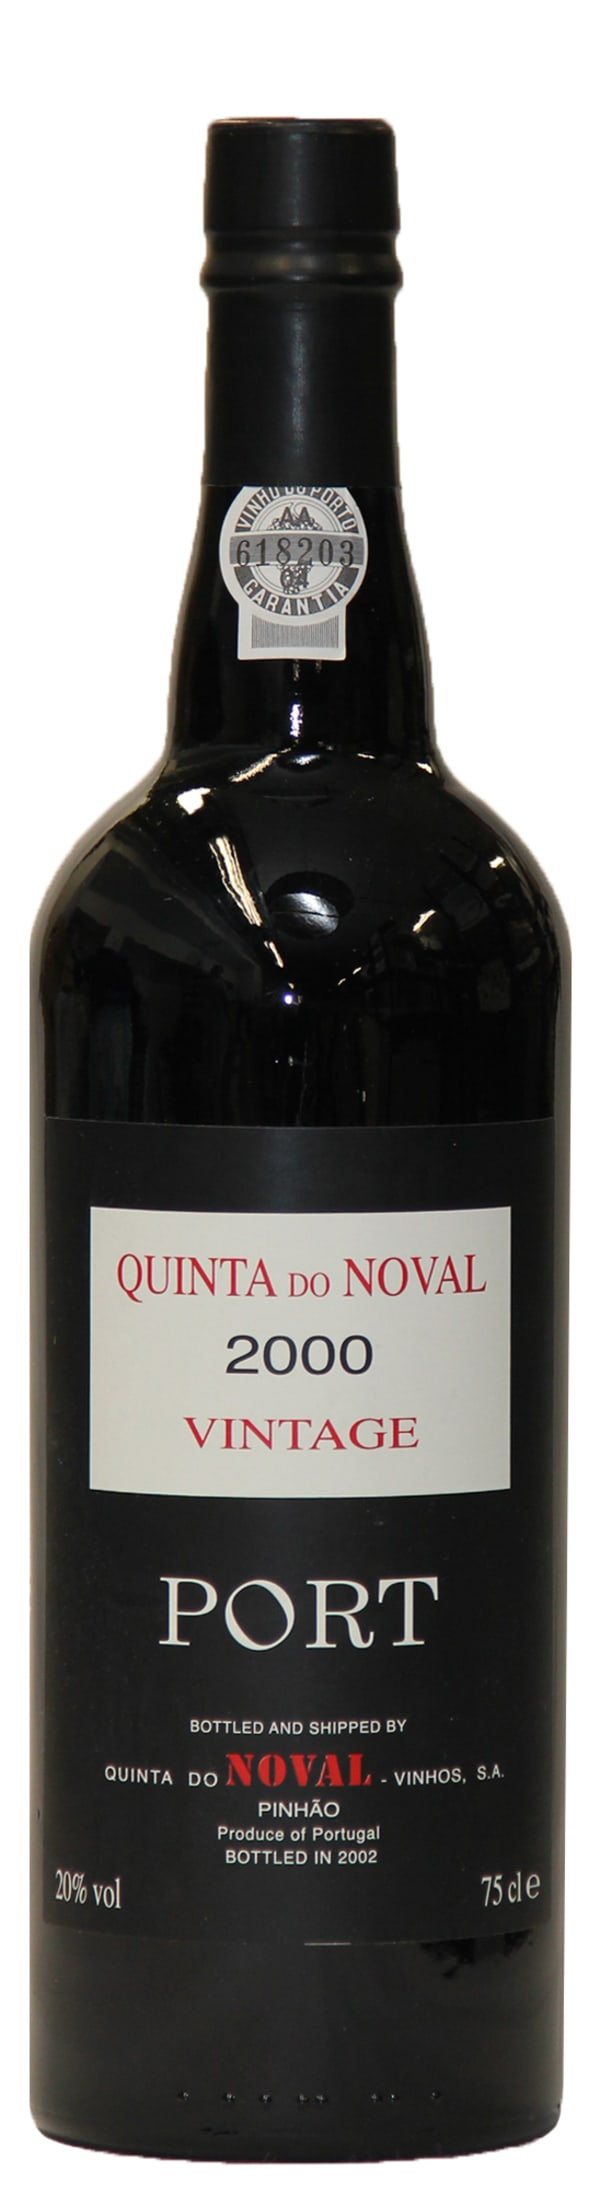 Quinta do Noval Vintage Port 2000